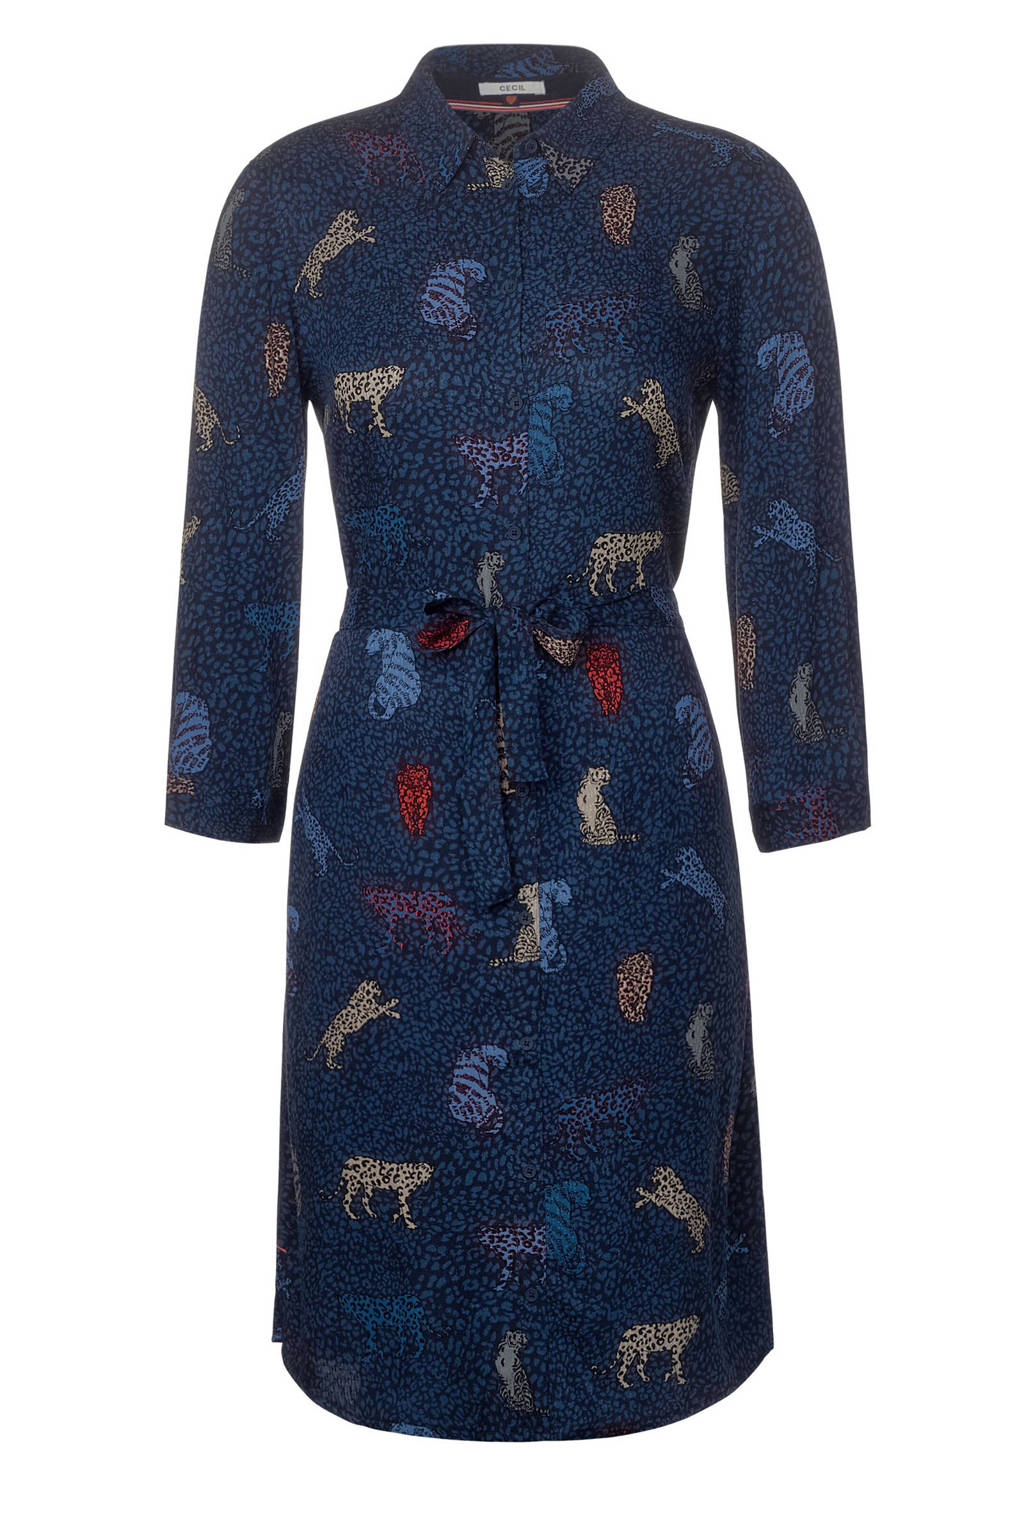 CECIL blousejurk met all over print donkerblauw, Donkerblauw